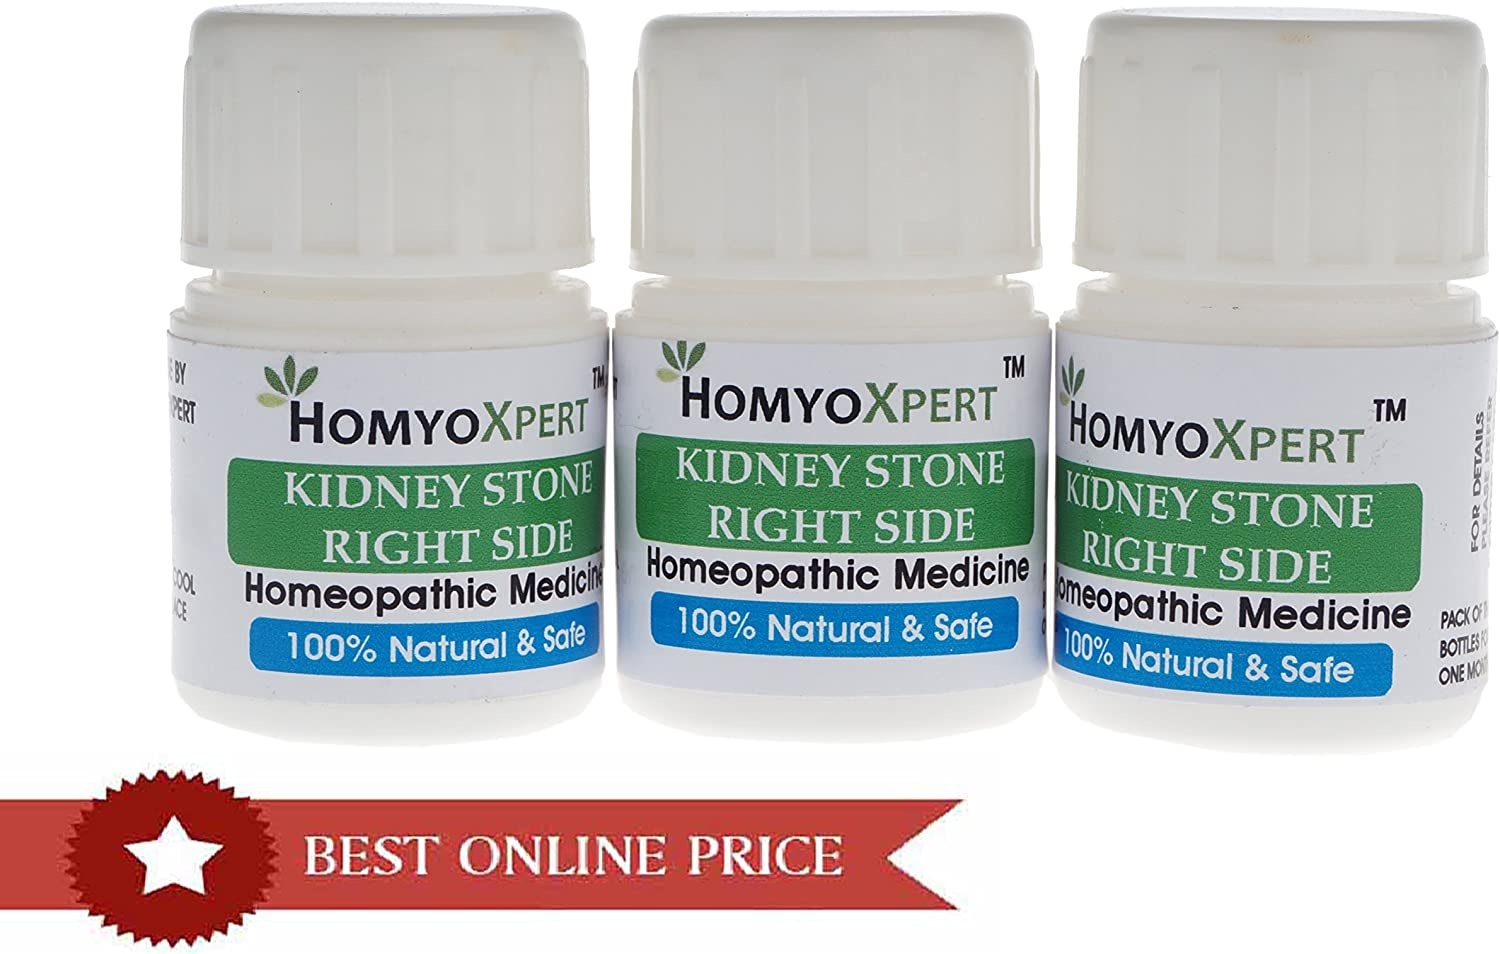 Amazon Com Homyoxpert Right Kidney Stone Homeopathic Medicine For One Month Health Personal Care